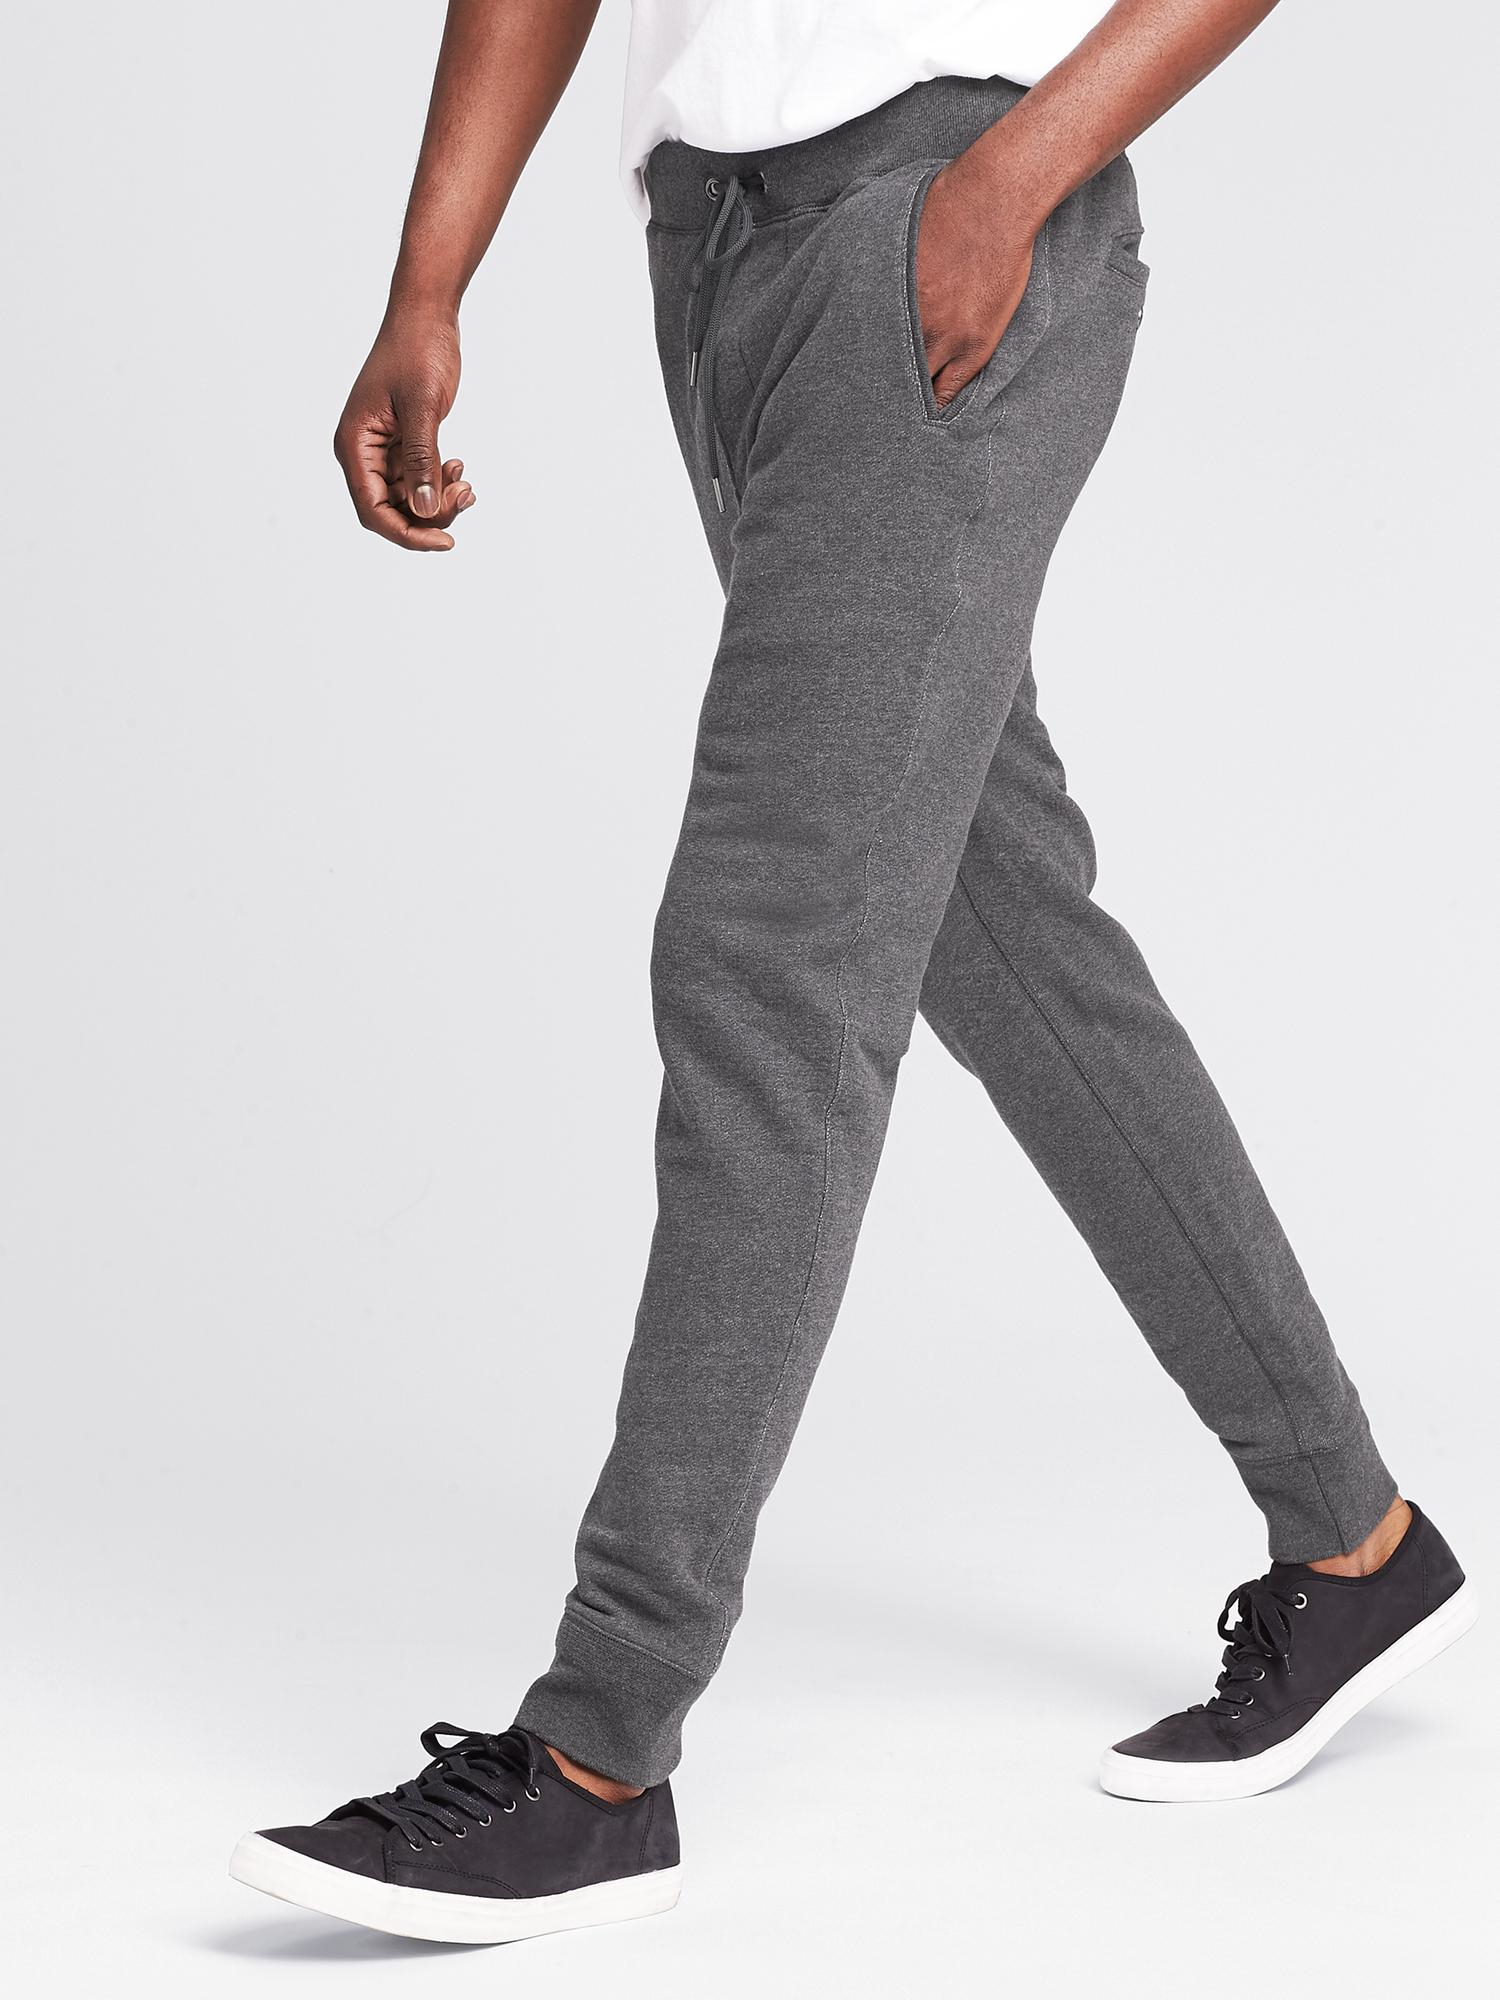 Banana Republic Heritage Charcoal Knit Jogger In Gray For